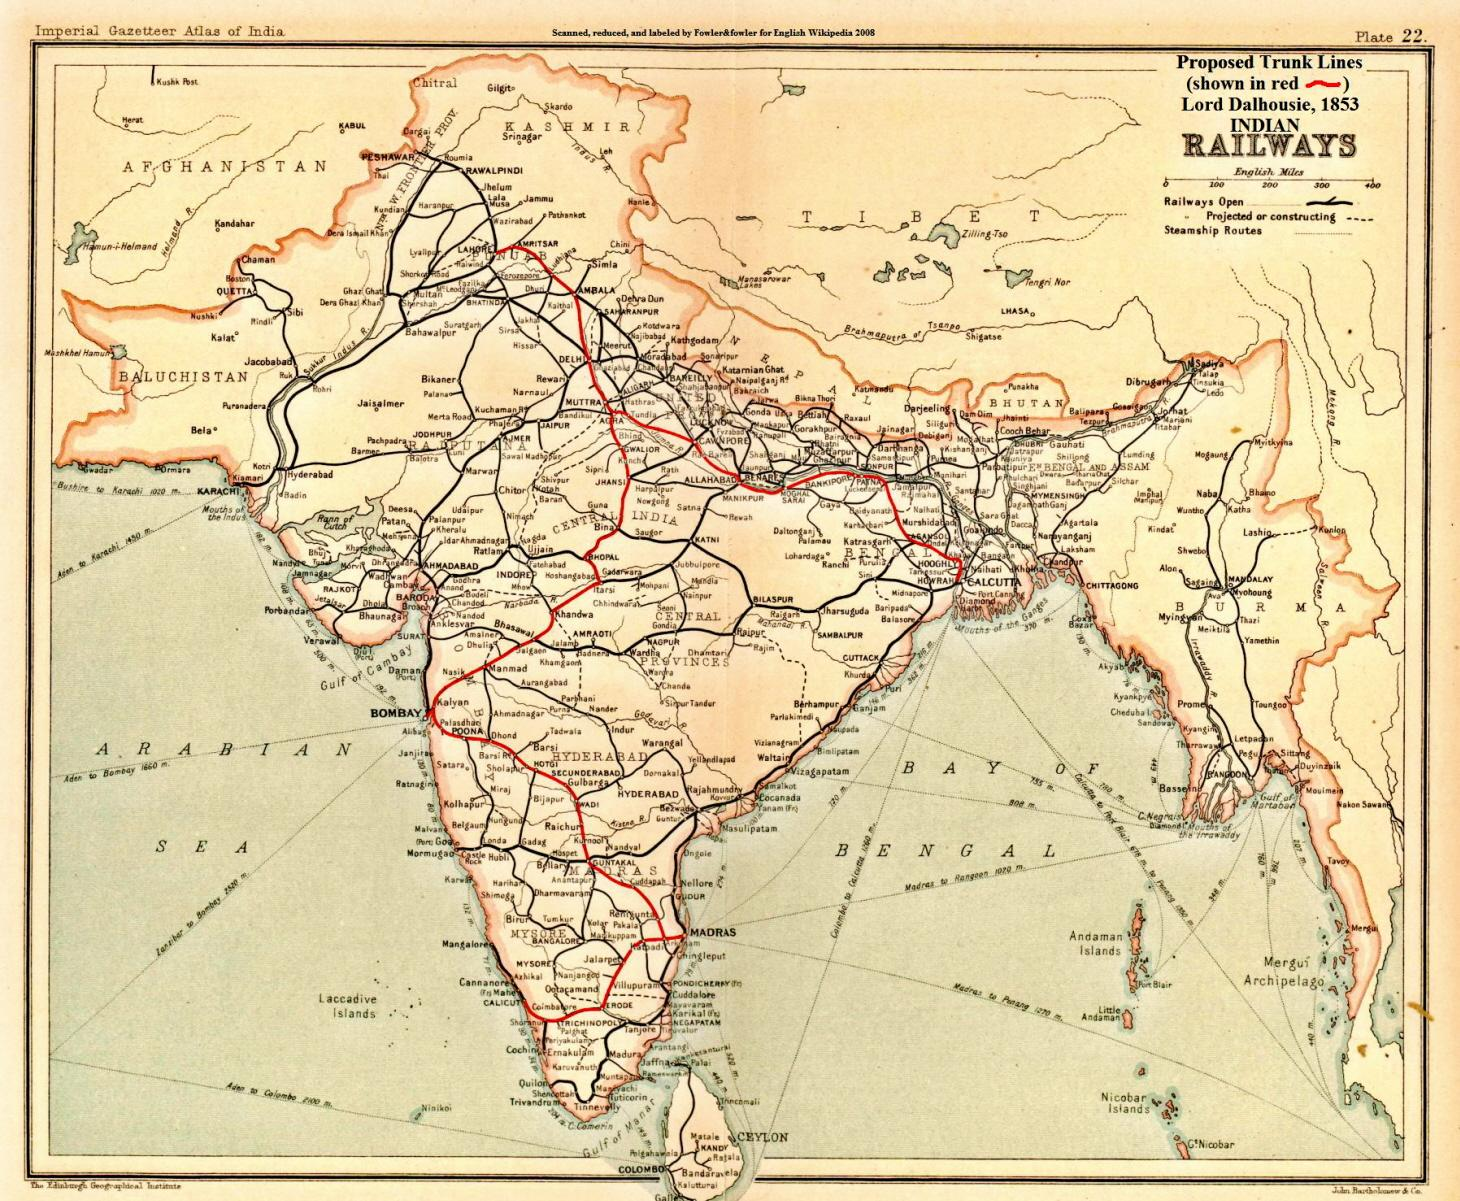 File:India railways trunklines 1853.jpg